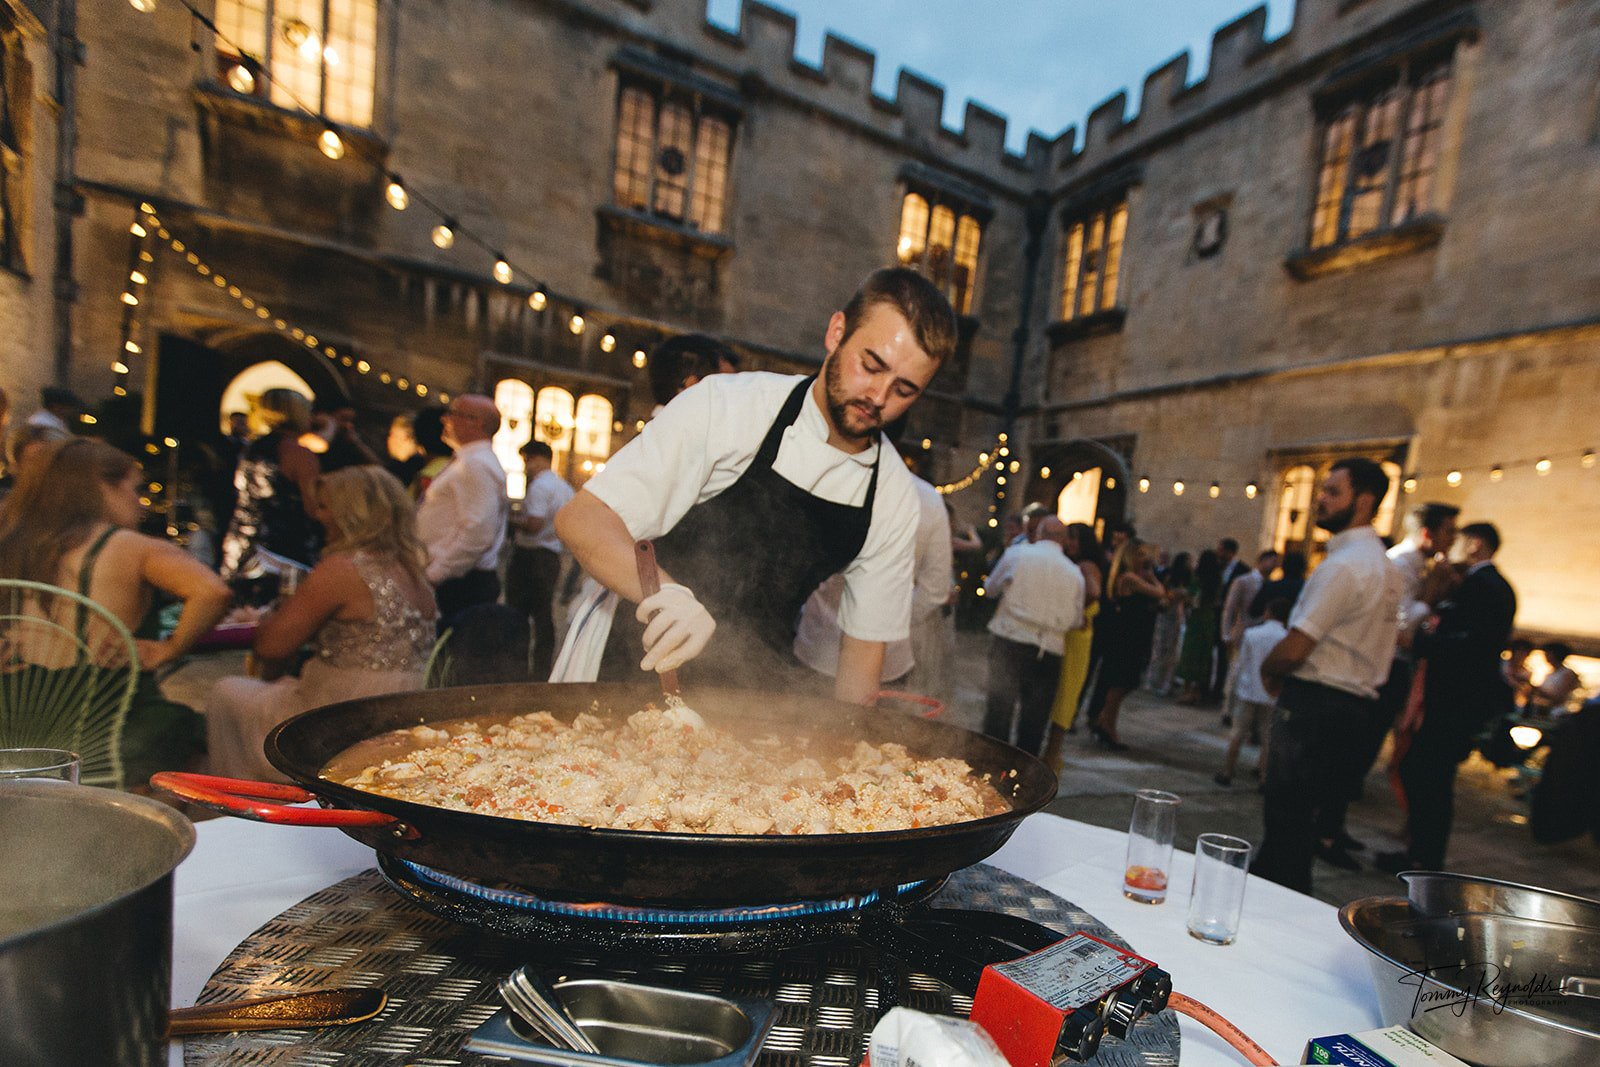 Evening reception paella being cooked in the courtyard at Hengrave Hall